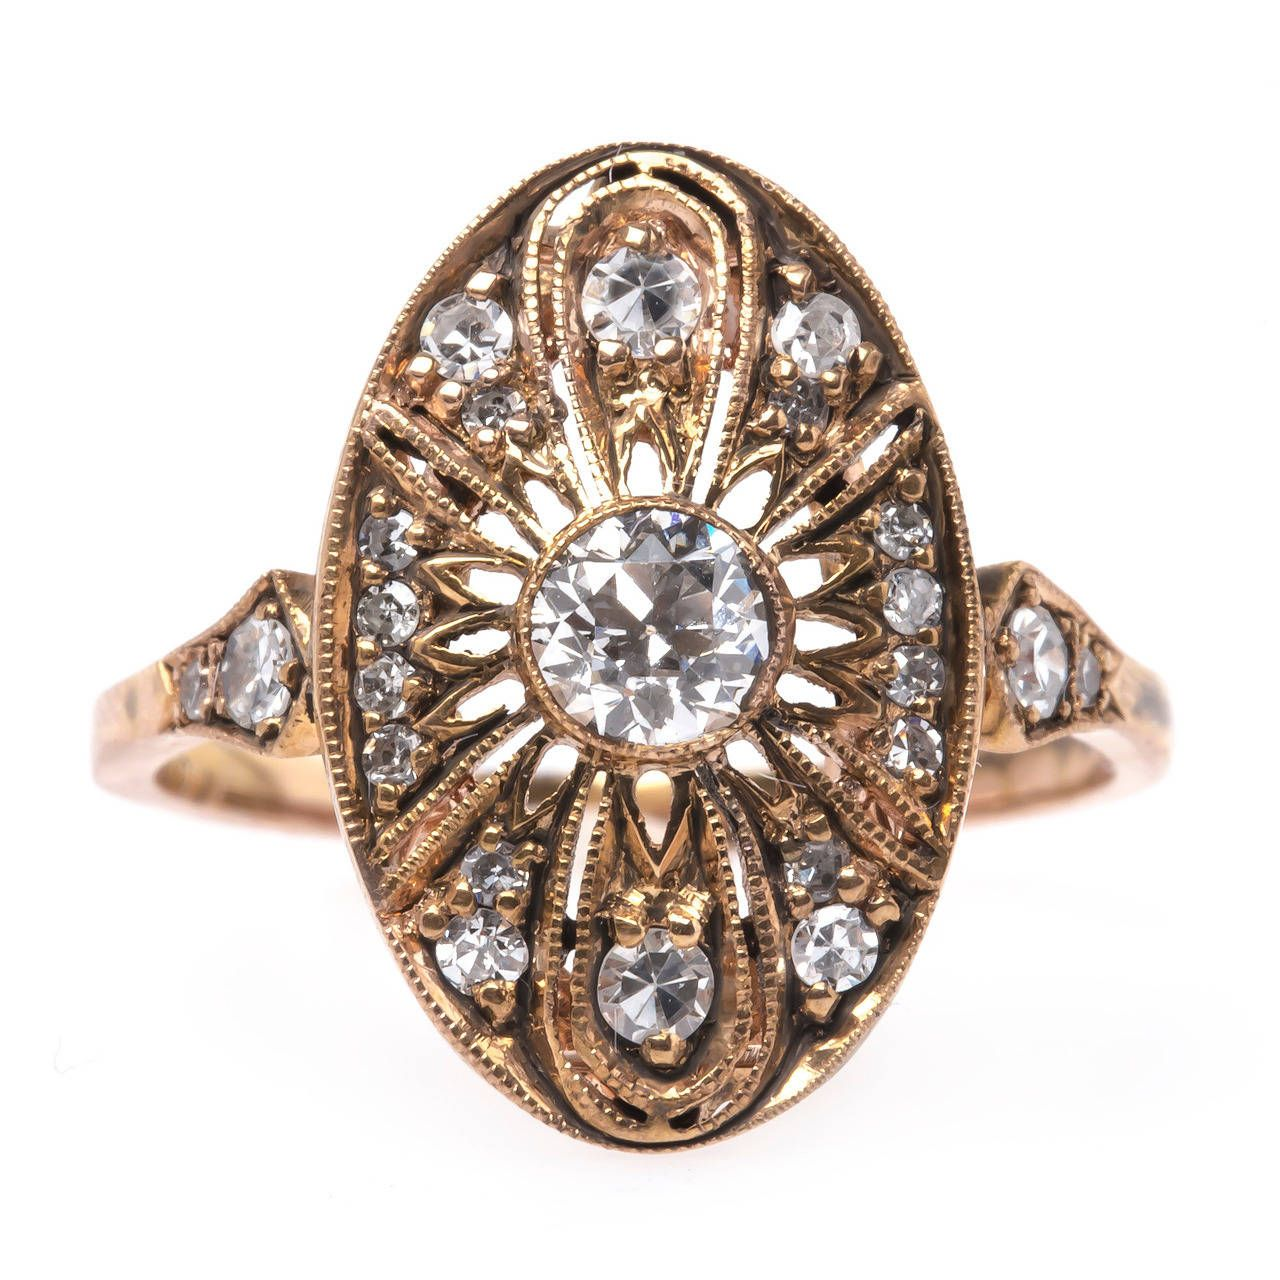 Trumpet Horn Peachtree Gold Ring From A Unique Collection Of Vintage Engagement Rings Vintage Engagement Rings Edwardian Engagement Ring Antique Gold Rings